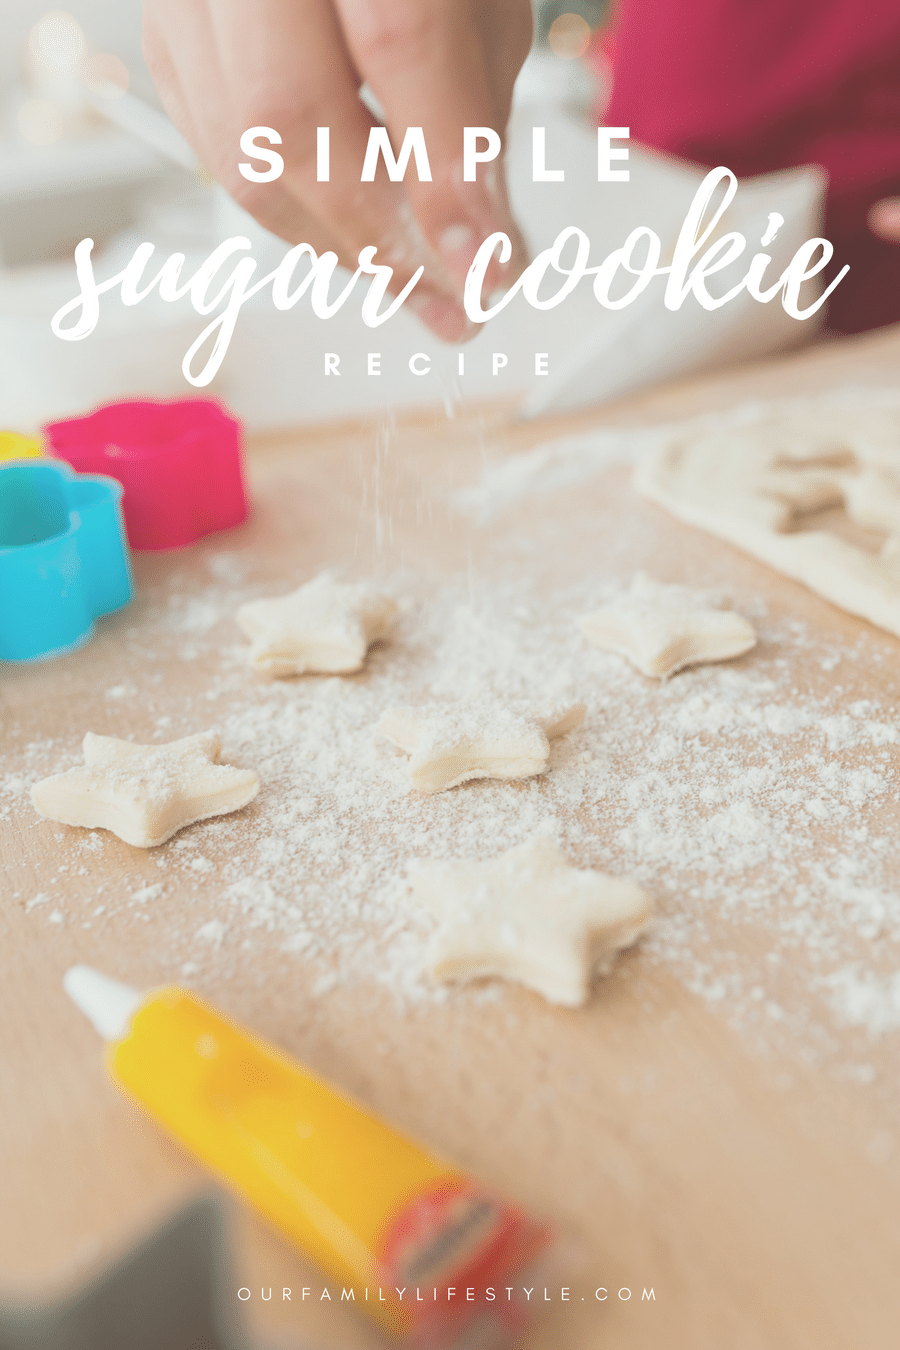 Give this simple sugar cookie recipe a try this holiday season!